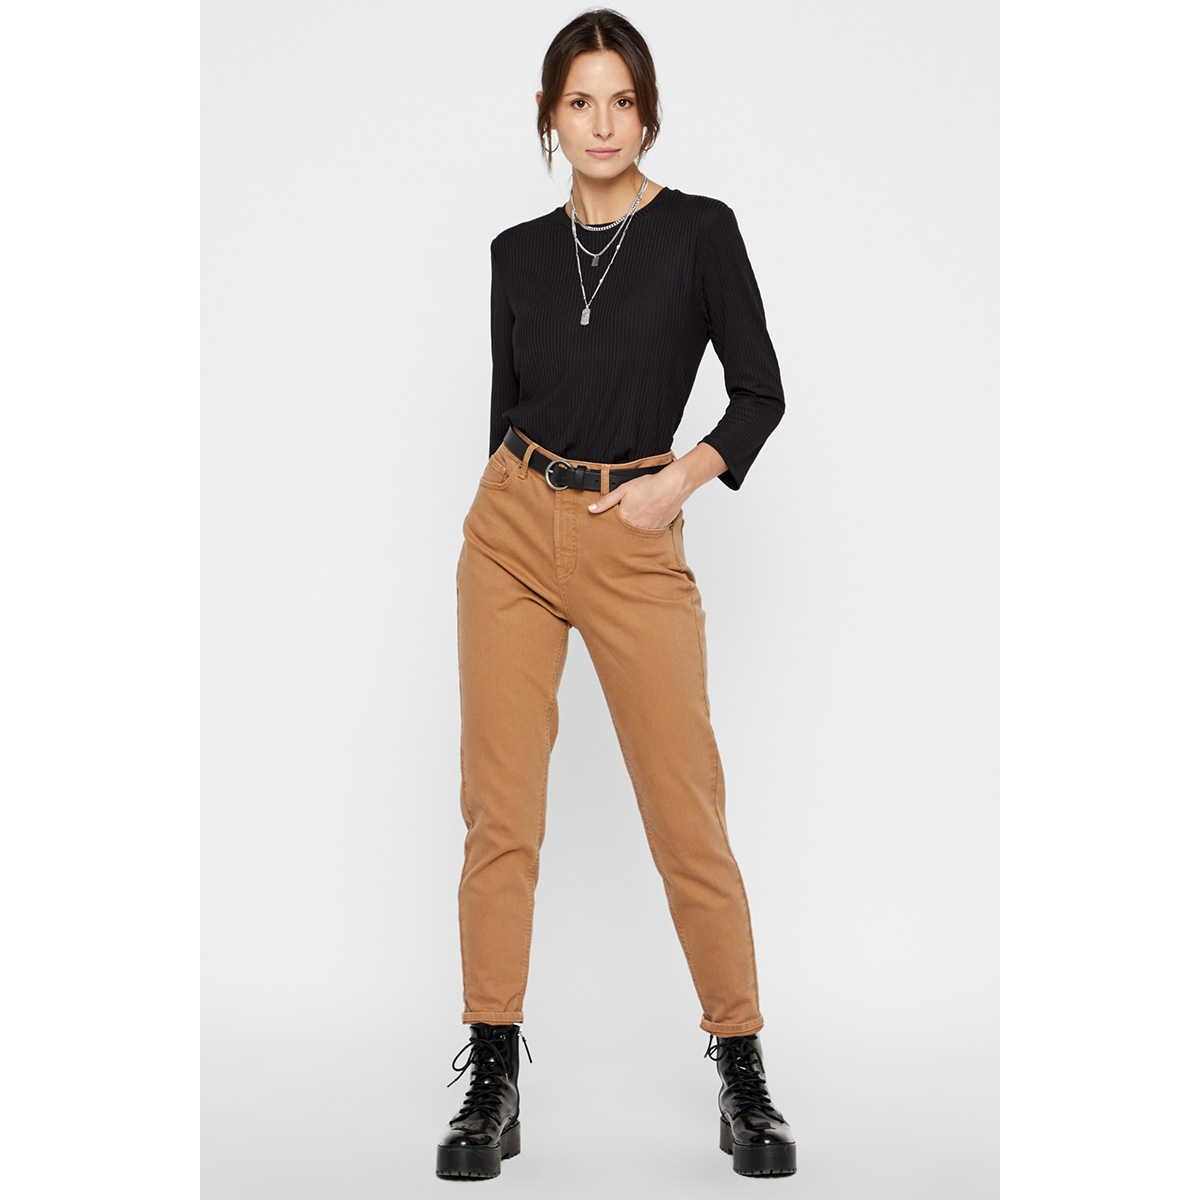 pcleah mom hw ank colour jeans-ba 17101783 pieces jeans toasted coconut